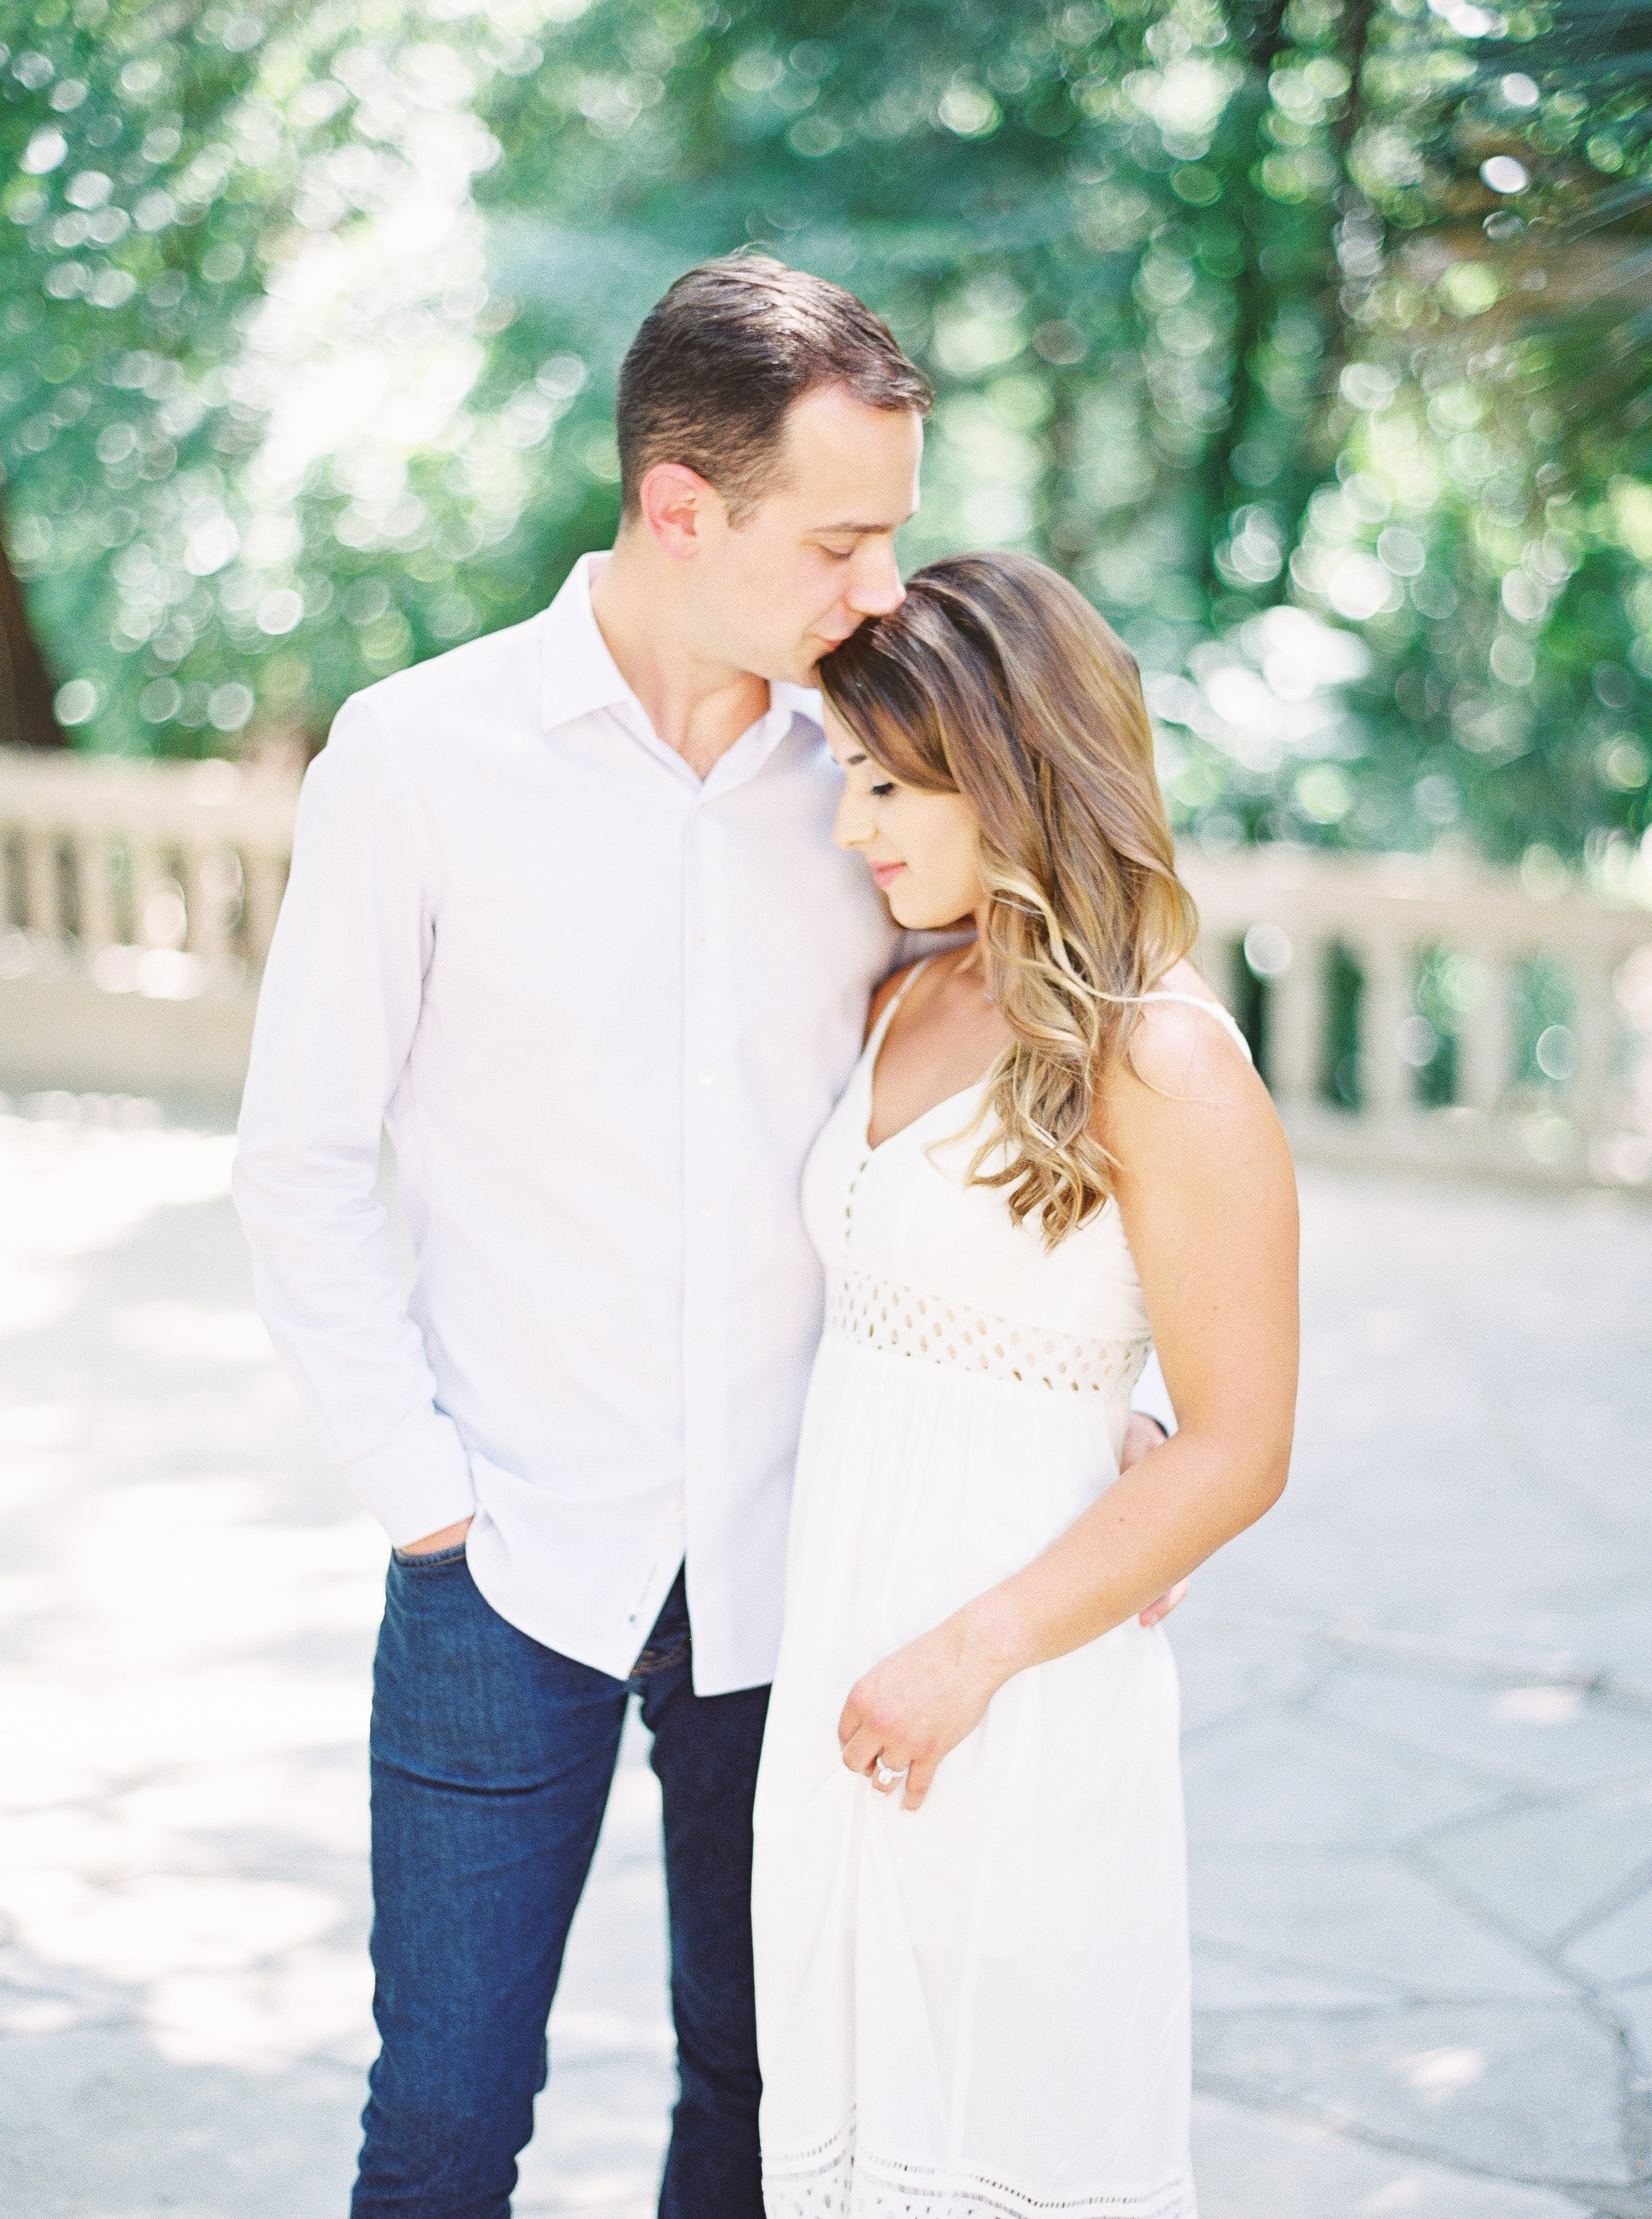 Rachel Owens Photography - Austin Wedding Photographer - Laguna Gloria Engagement - 2.jpg